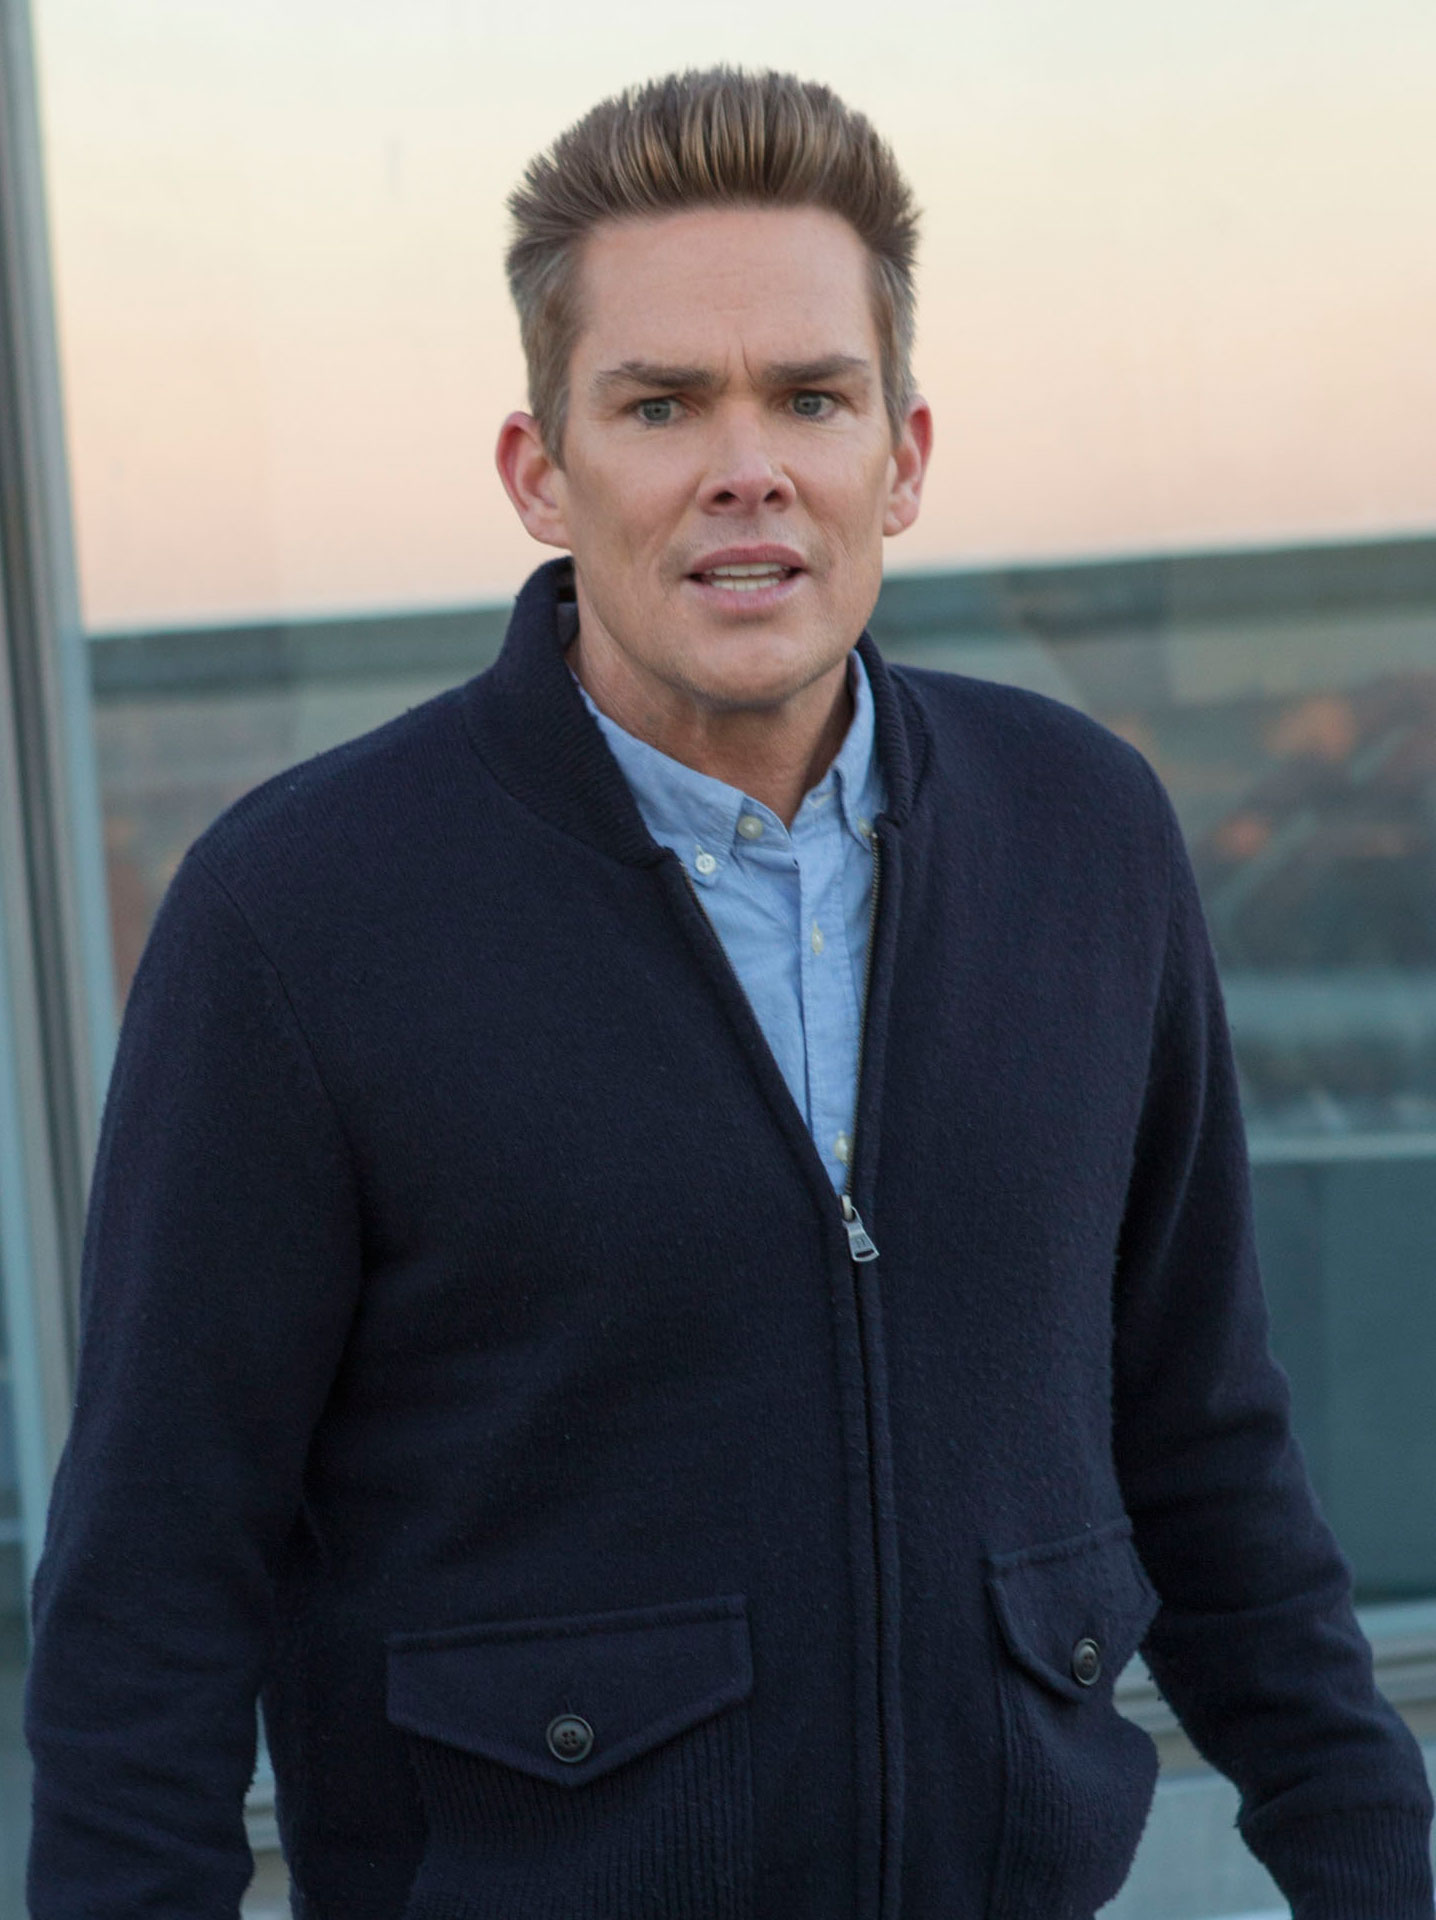 mark mcgrath age